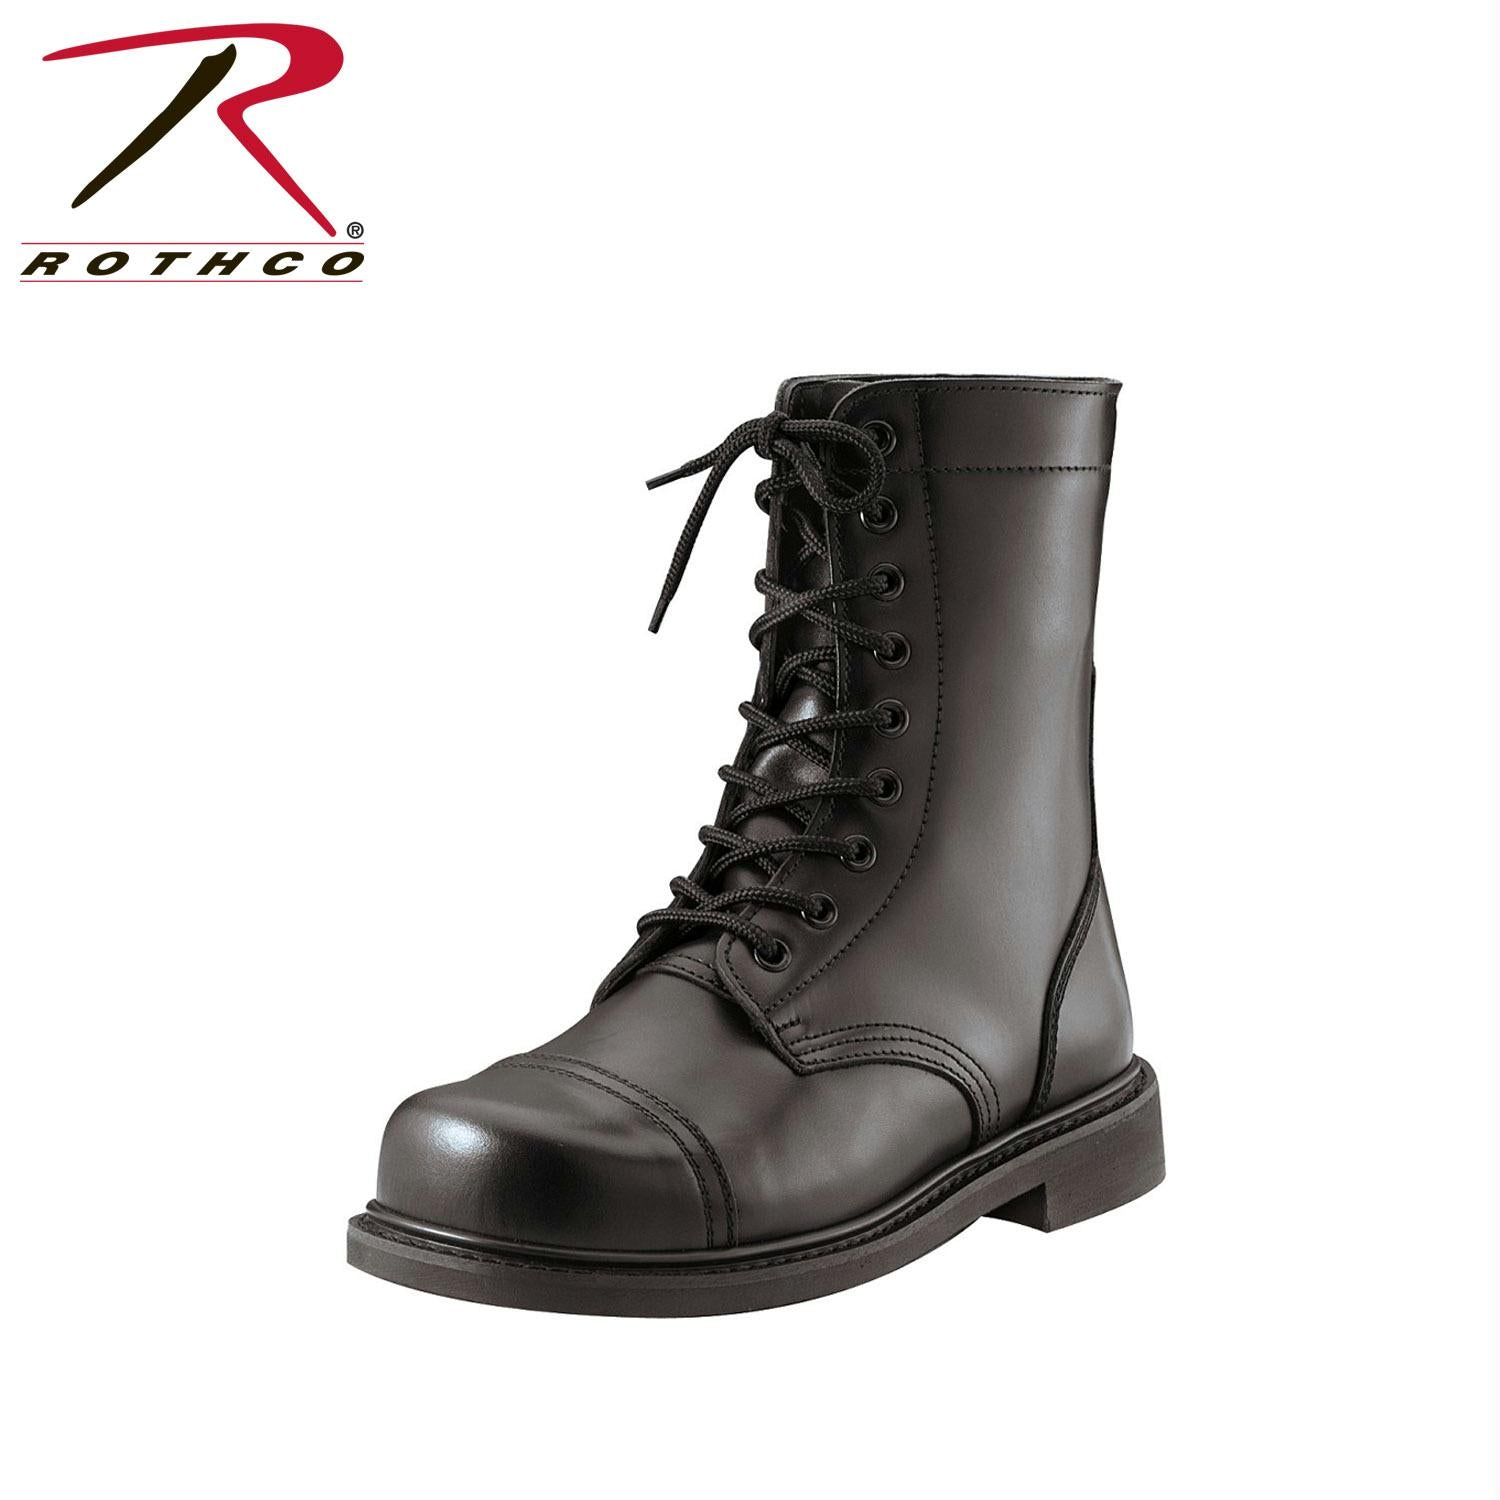 Rothco G.I.Type Steel Toe Combat Boot - 7